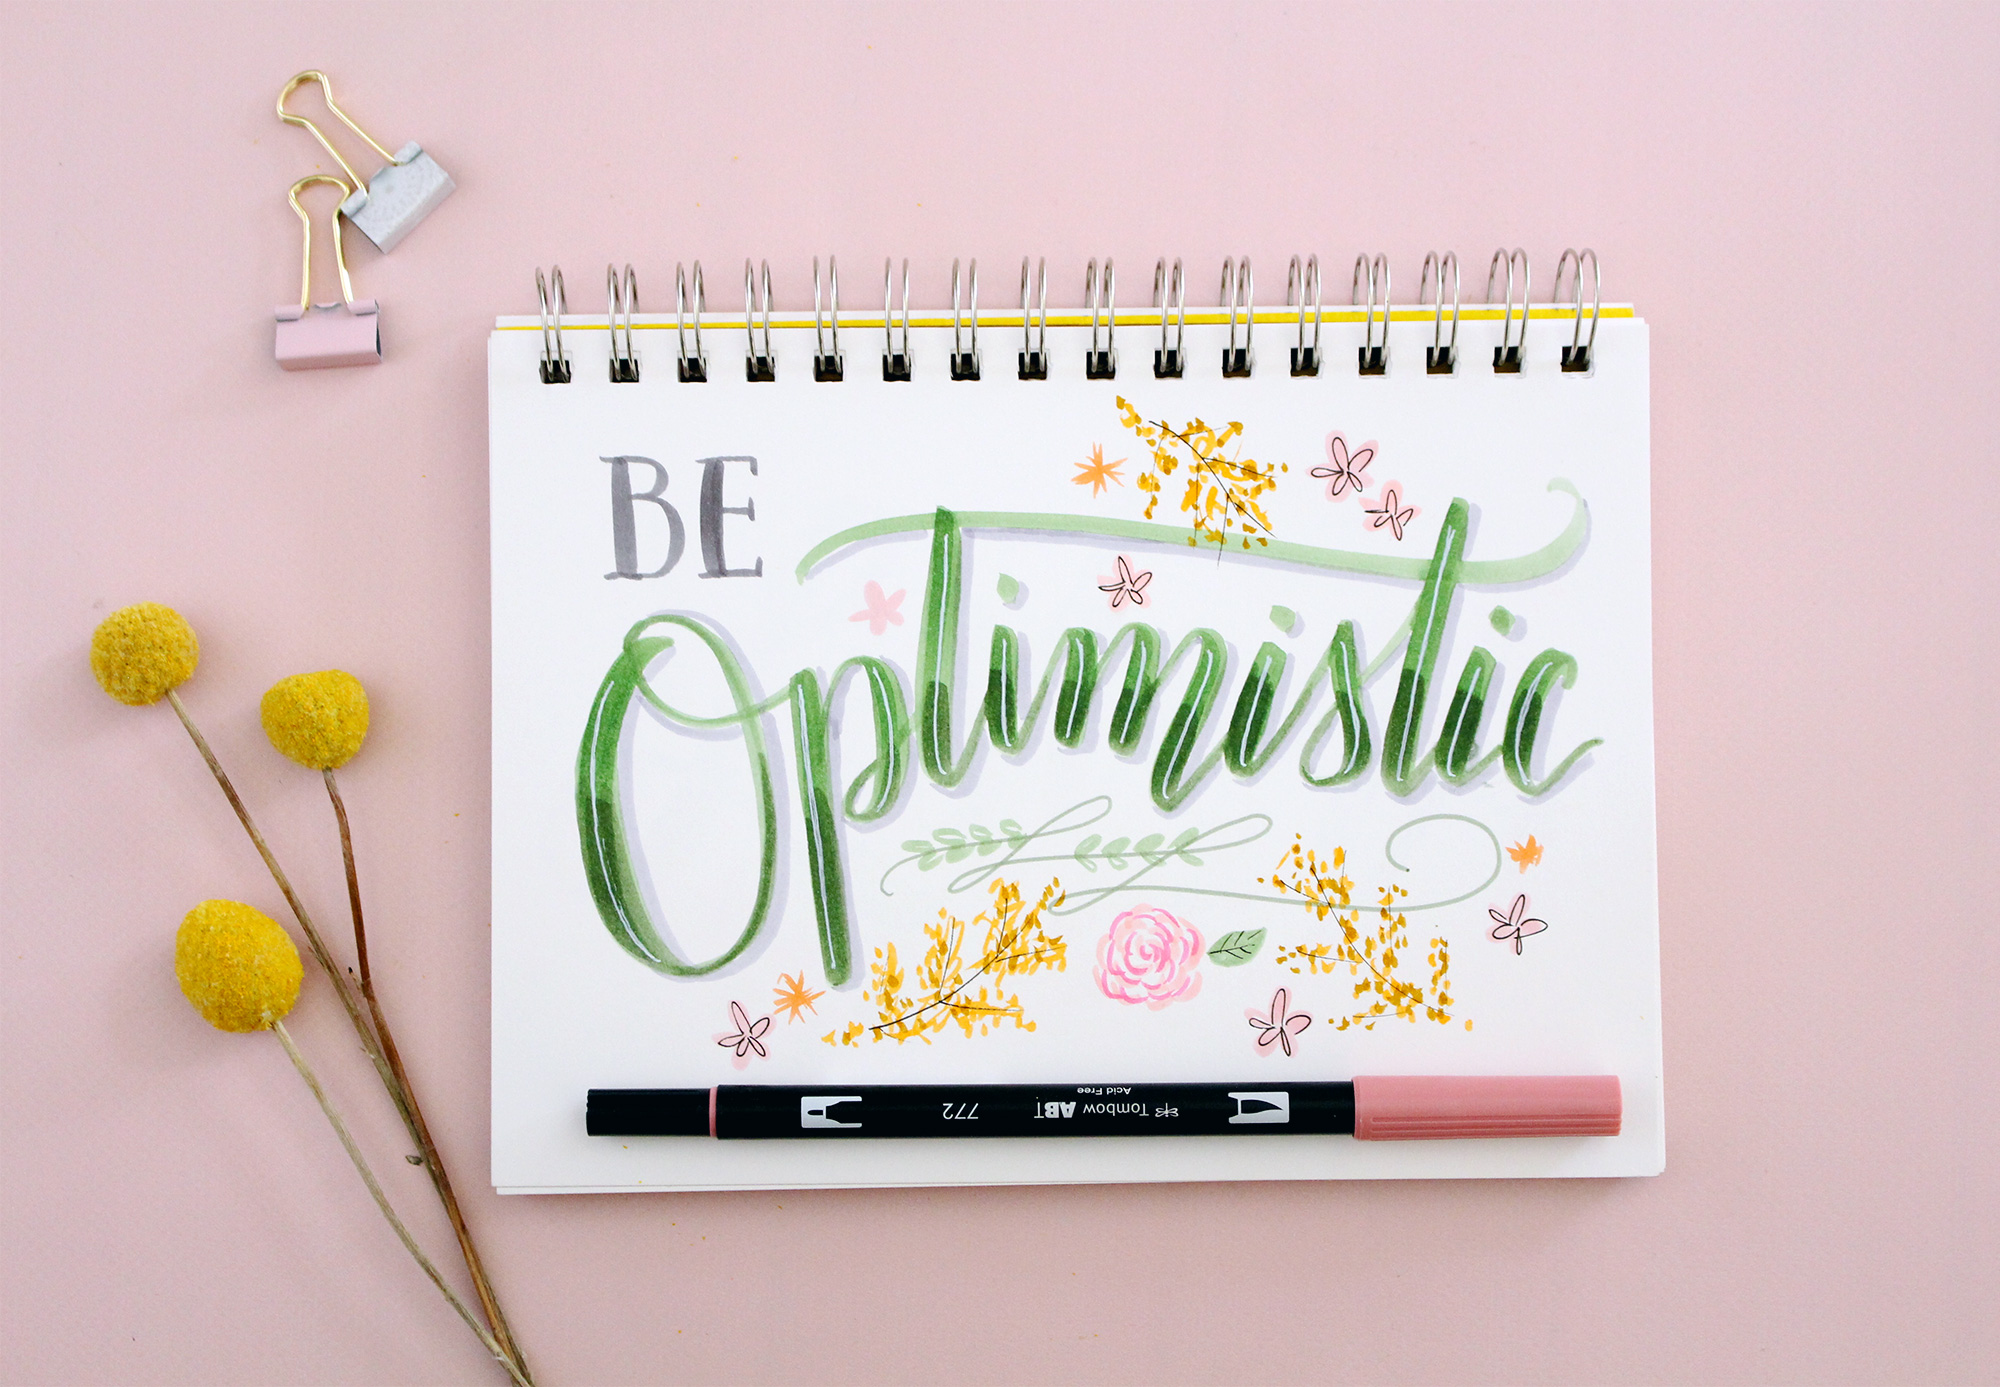 Being optimistic is one of the best ways you can be an encouragement to those around you